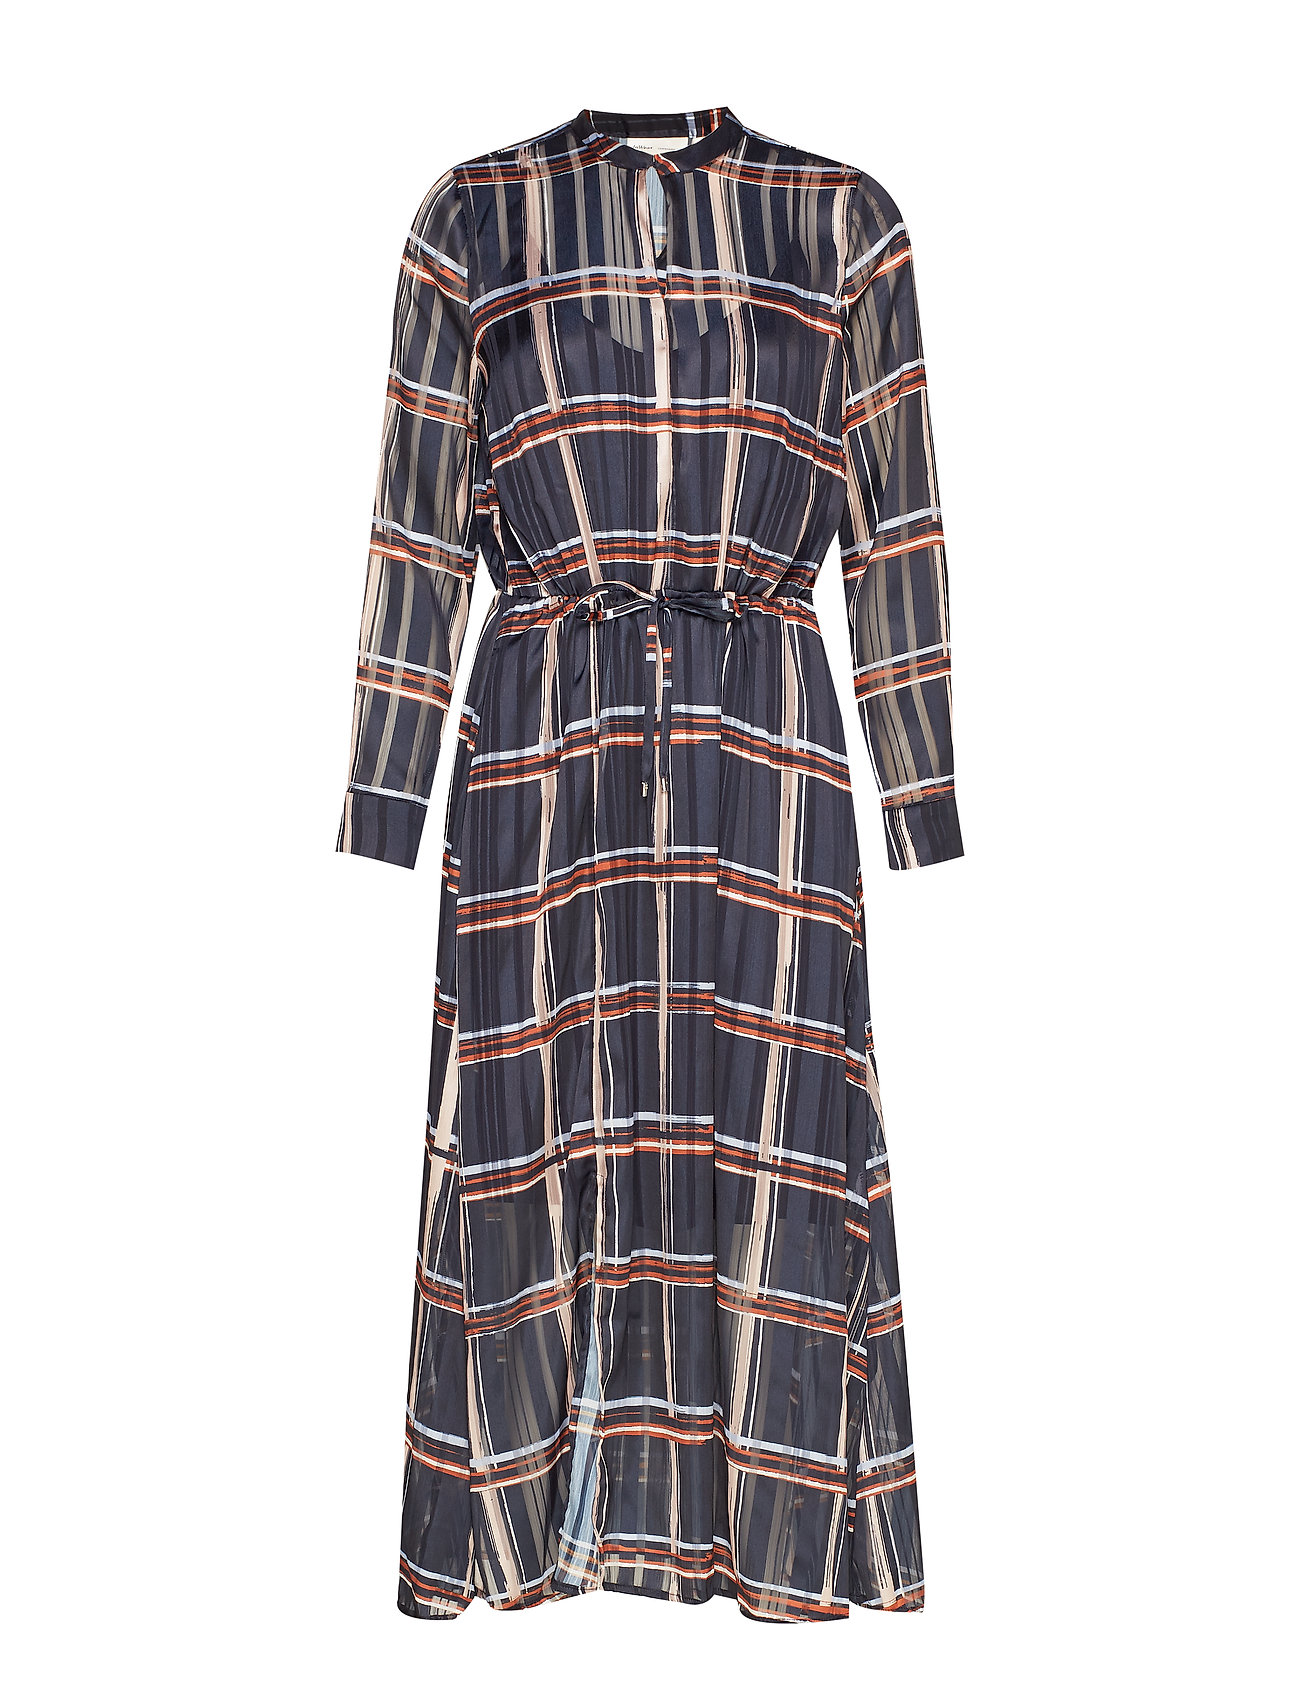 InWear ZilmaIW Hilma Dress - MARINE BLUE CHECK